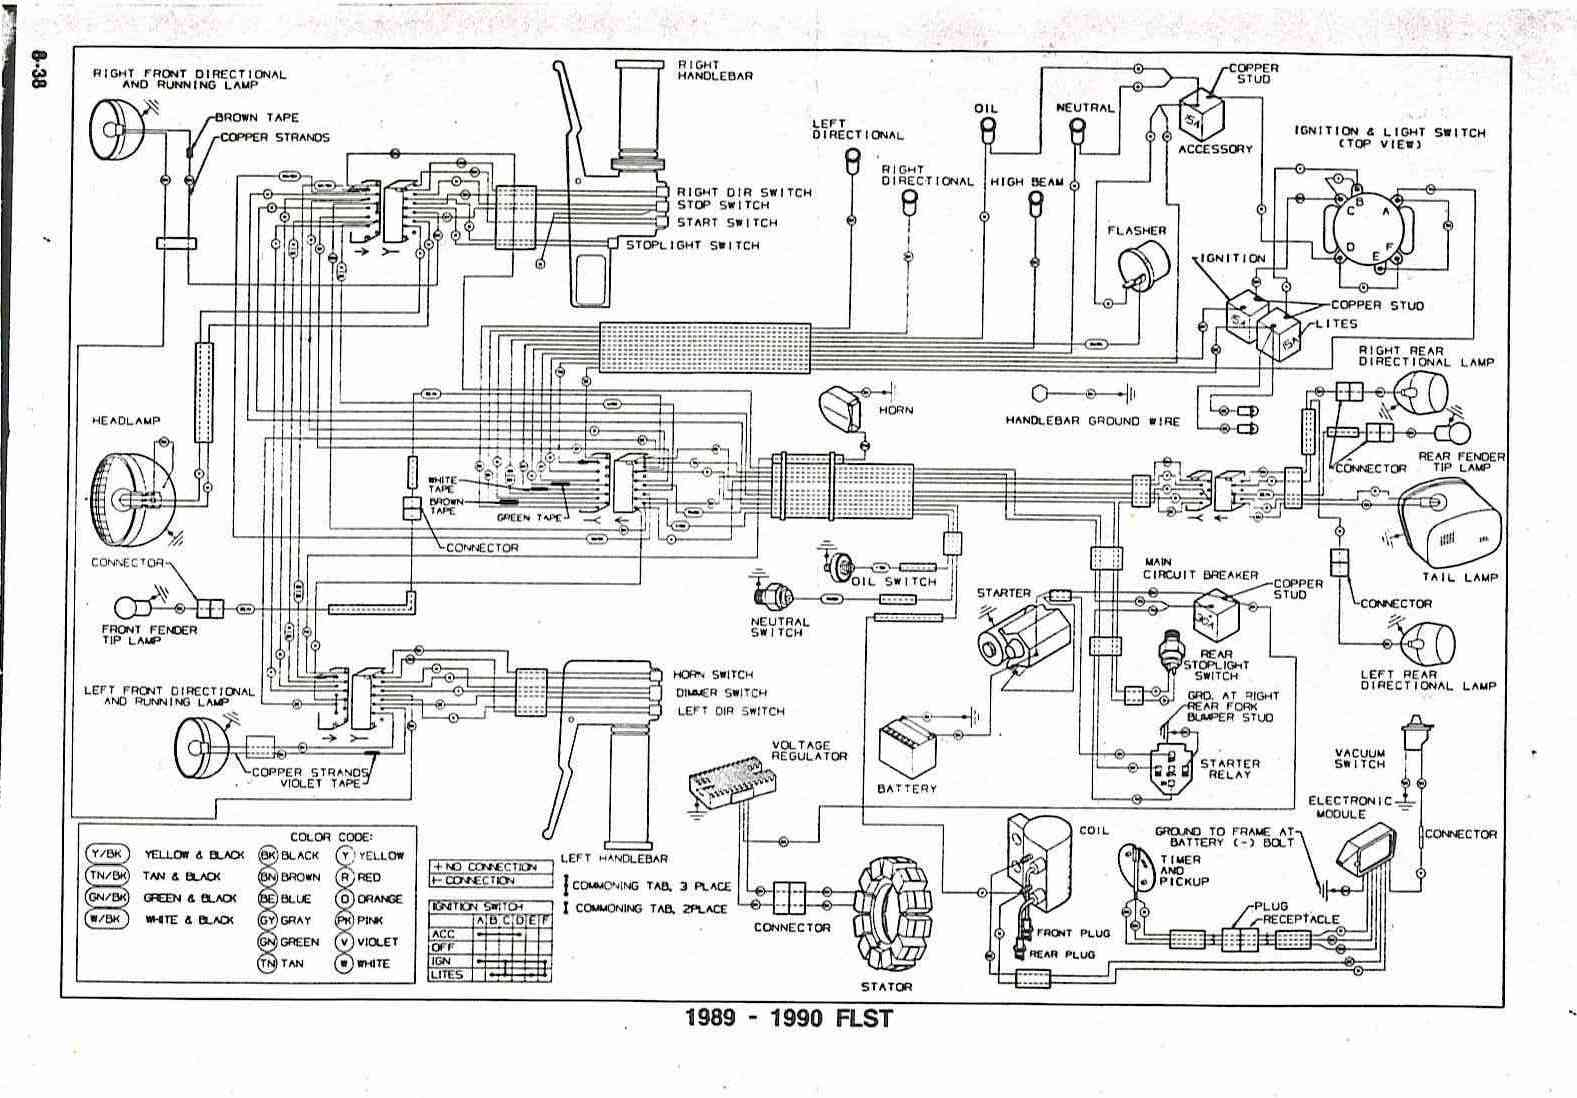 951HD_wireing_schematic2 harley wiring diagrams harley davidson golf cart schematics harley davidson wiring diagram at love-stories.co